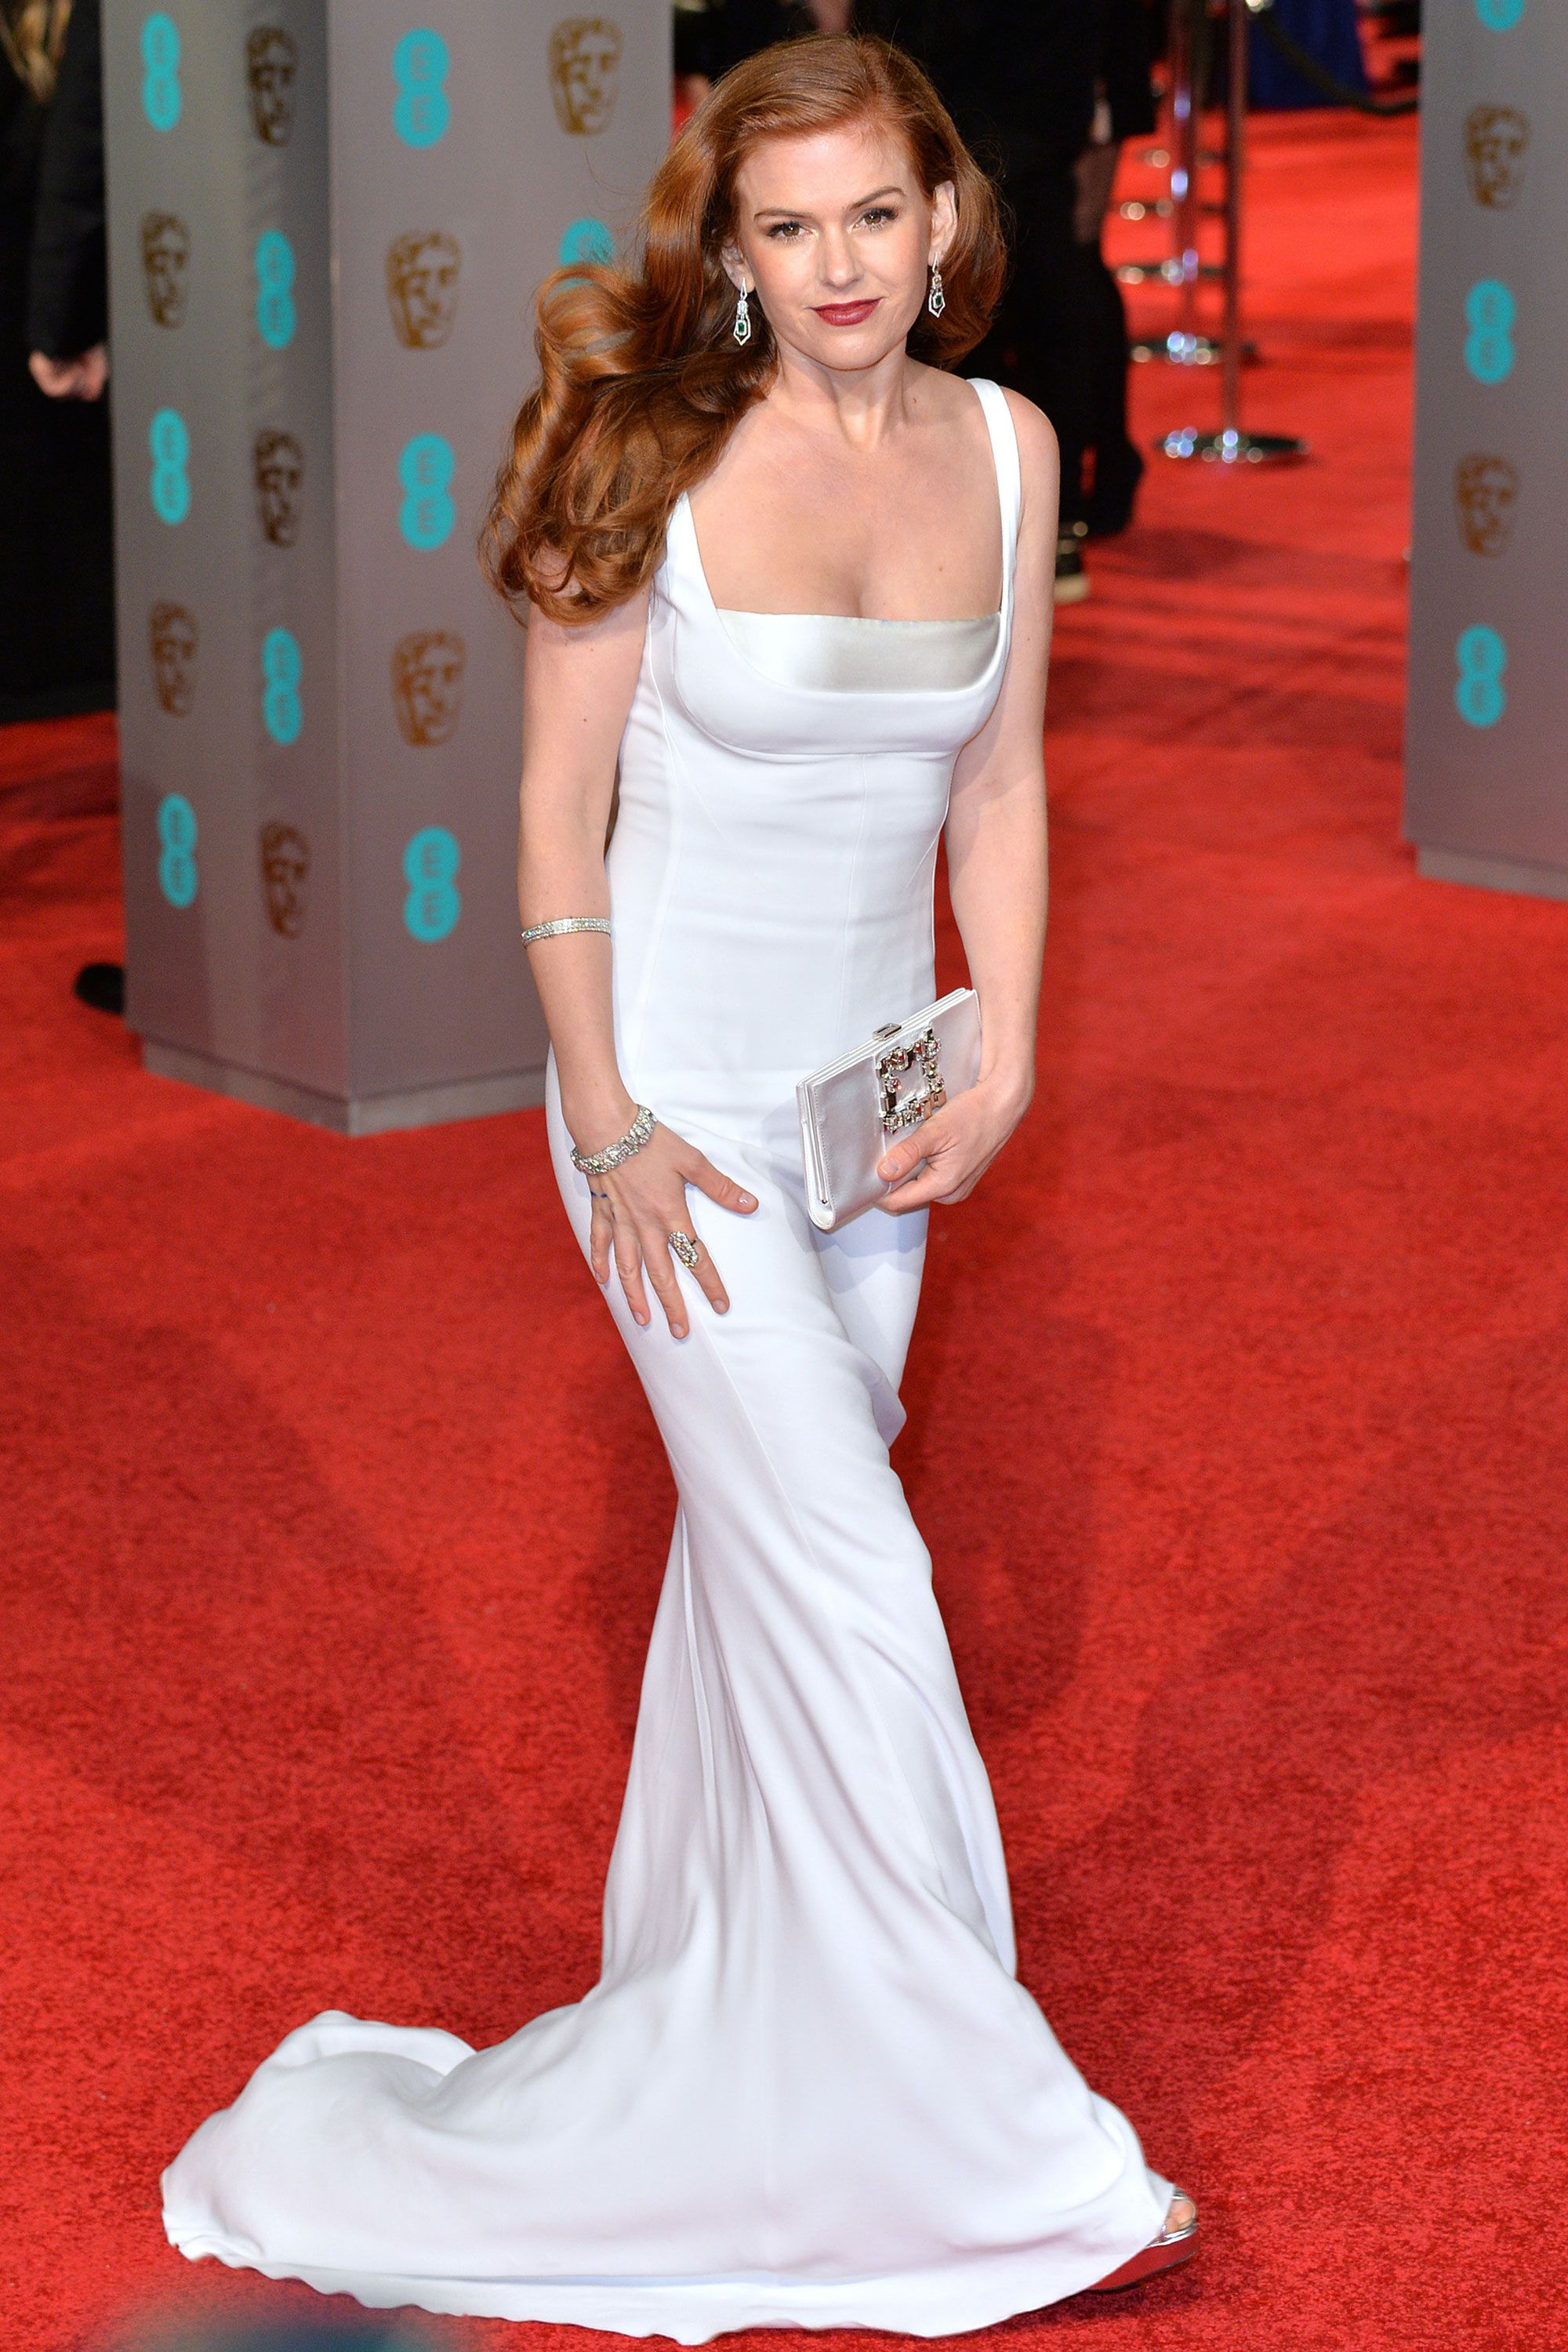 dceb872617c Celebrities wearing white Stella McCartney dresses – Stella McCartney  designs on the red carpet